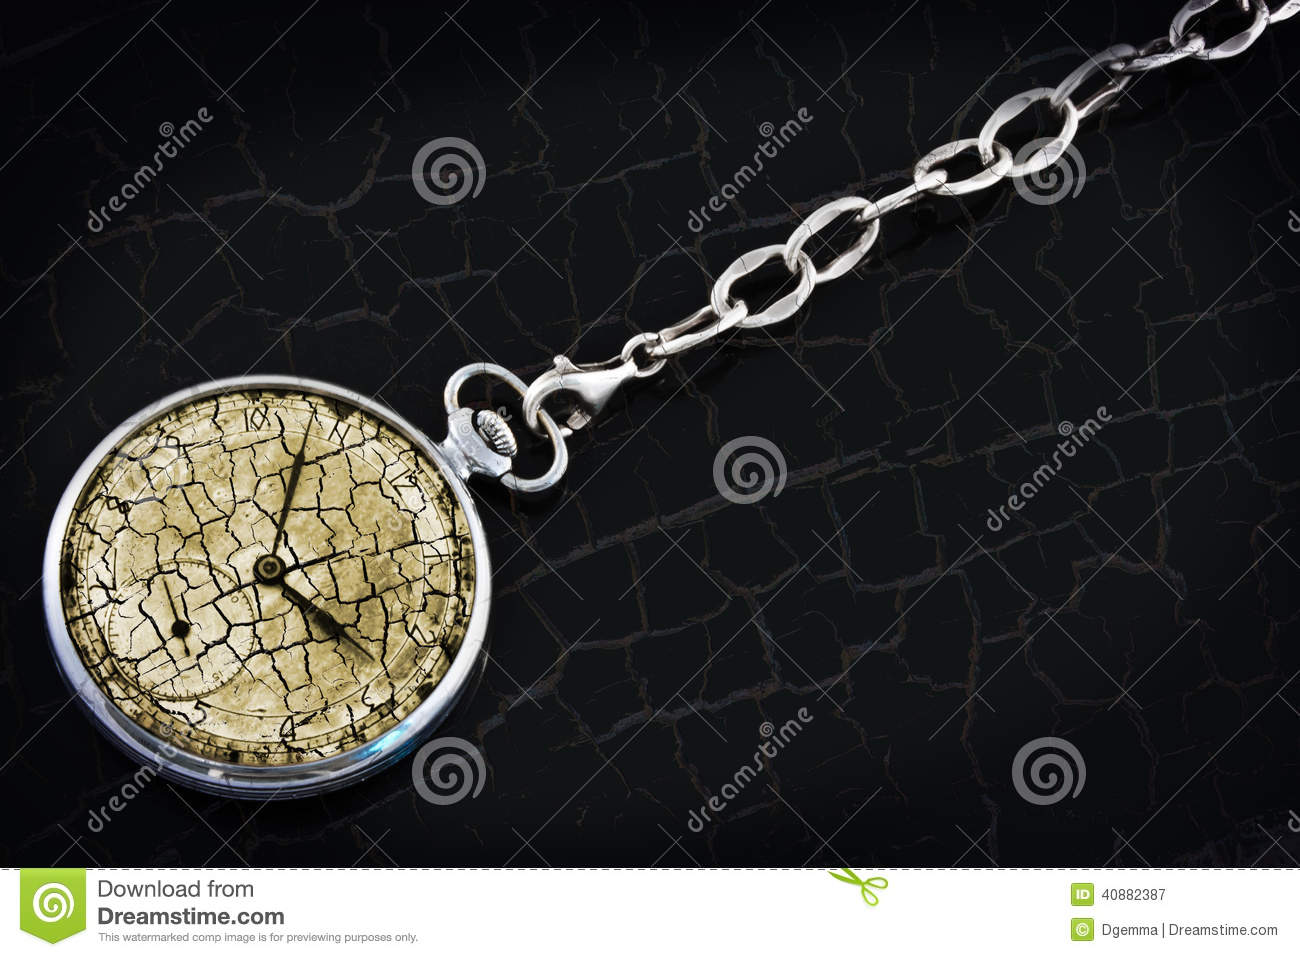 Antique pocket watch on a silver chain